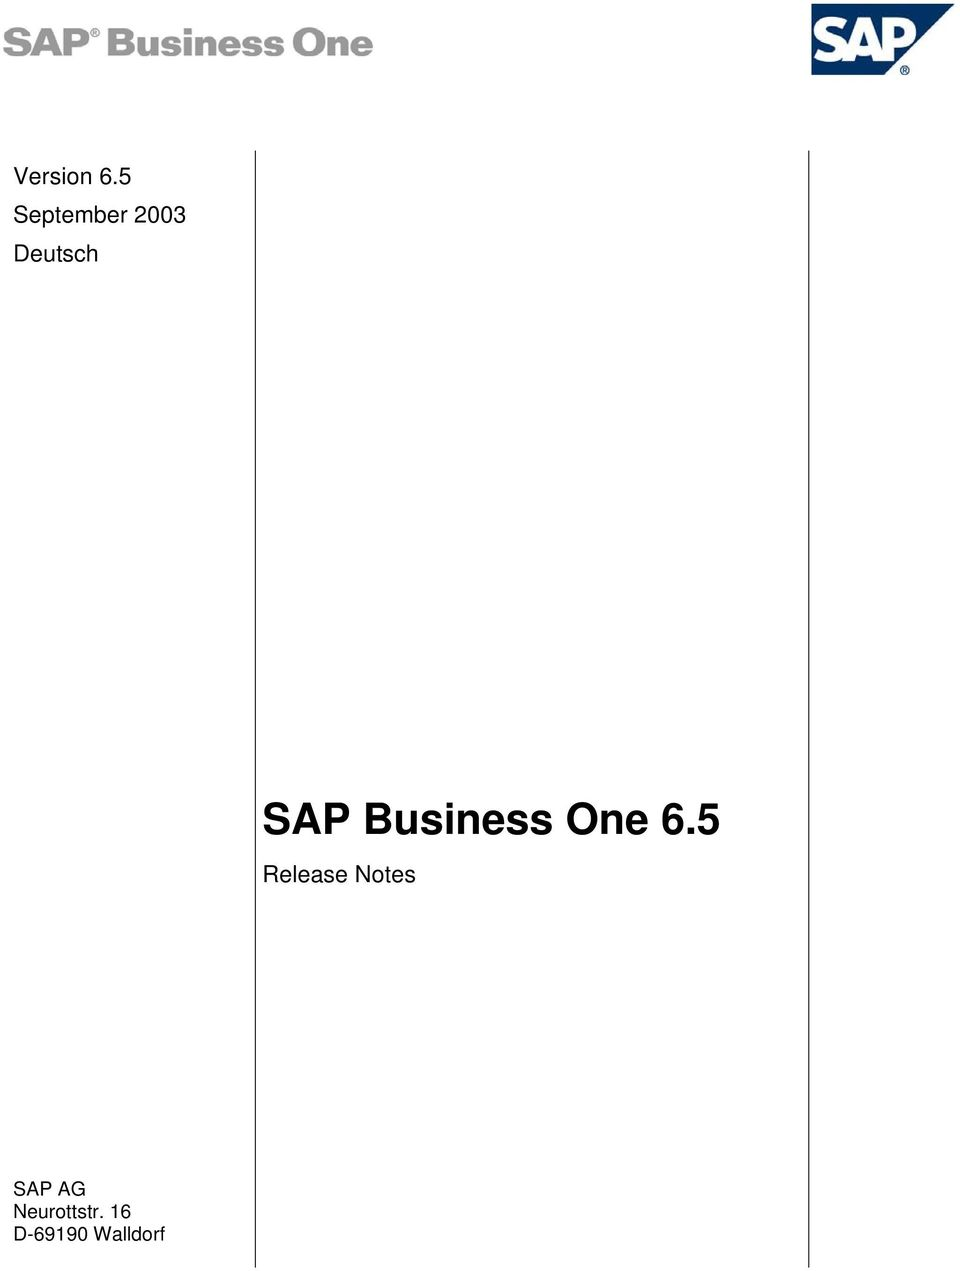 SAP Business One 6.